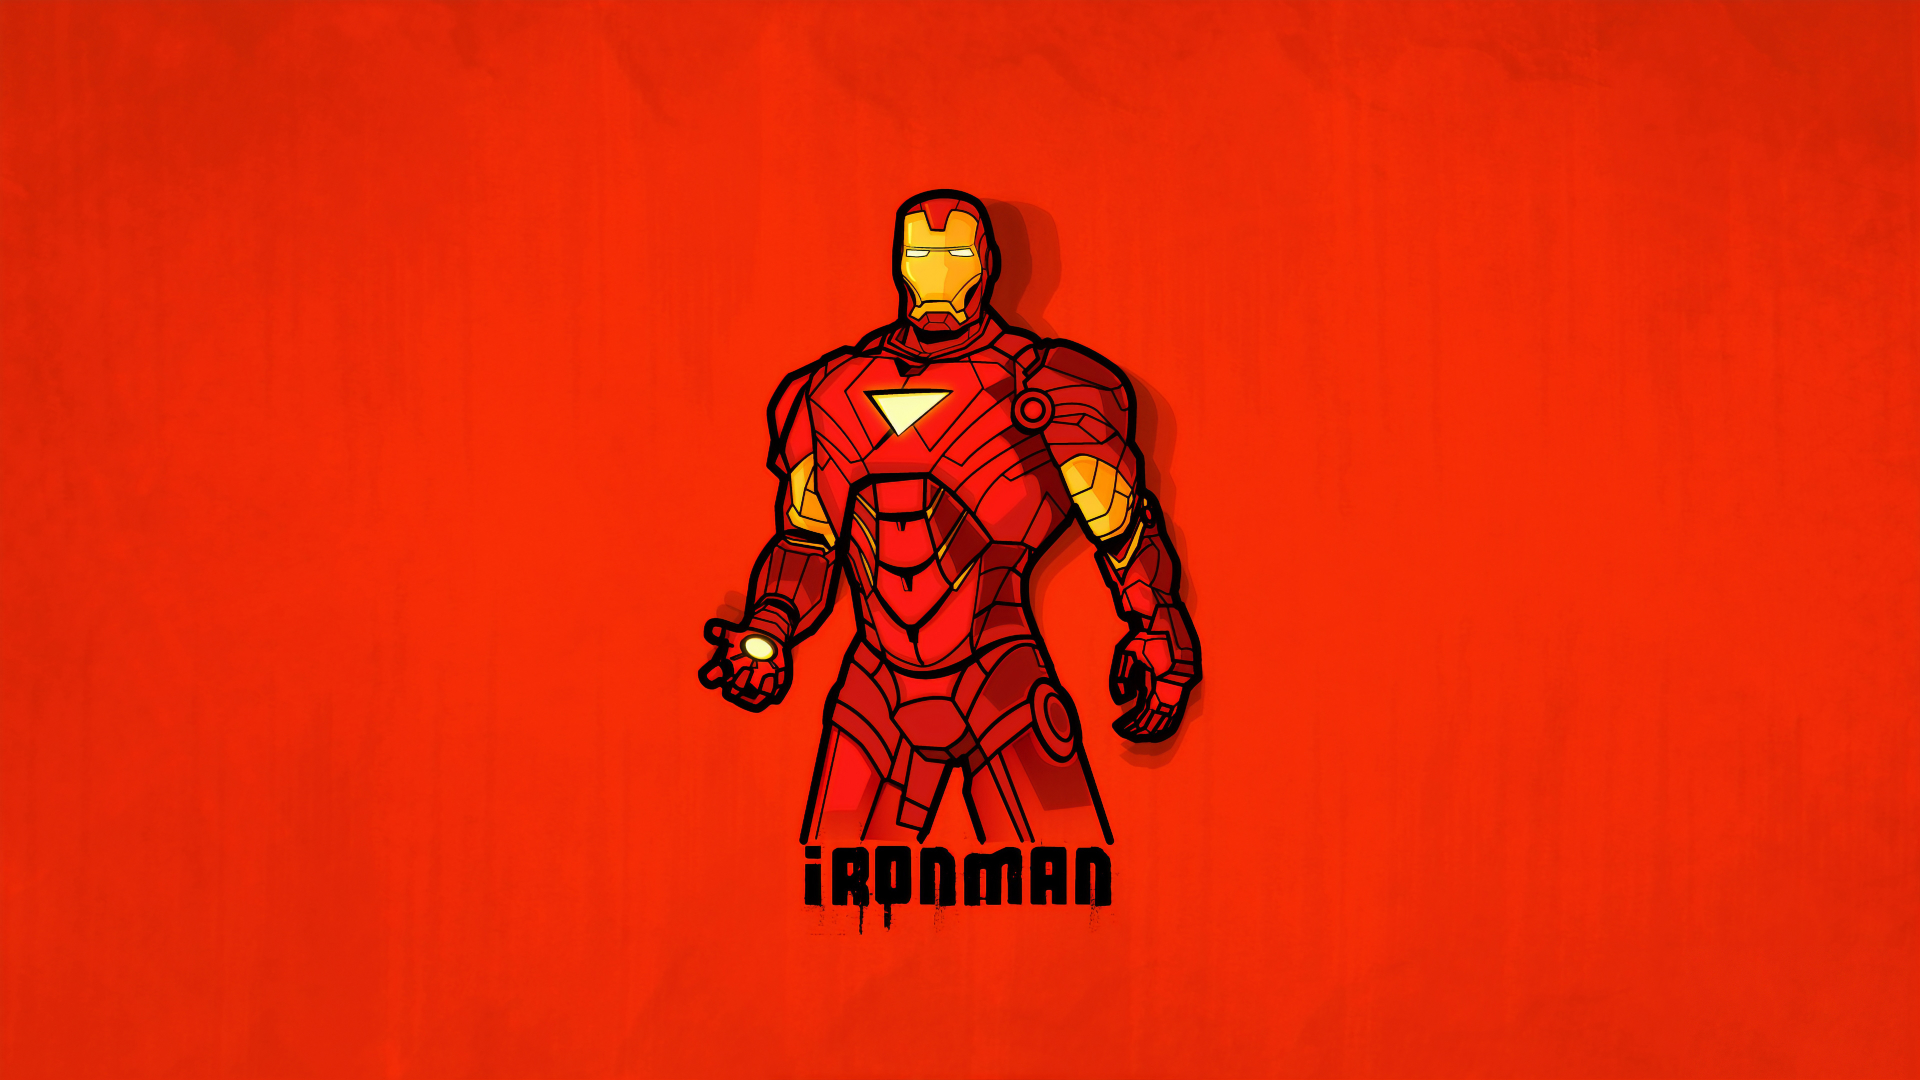 1920x1080 Minimalist Iron Man 1080p Laptop Full Hd Wallpaper